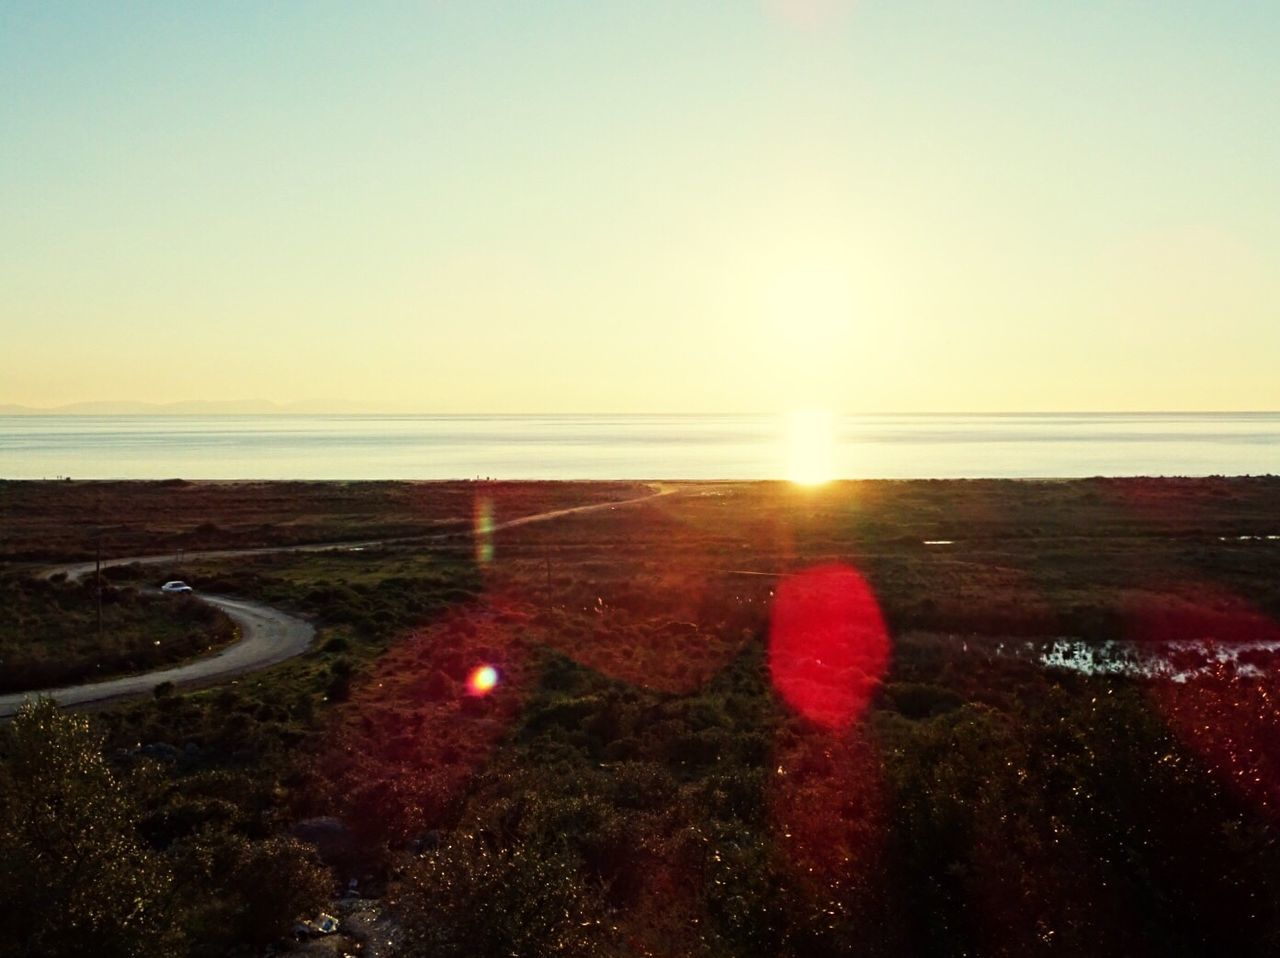 sunset, lens flare, sun, scenics, sea, nature, water, beauty in nature, horizon over water, tranquility, sky, sunlight, tranquil scene, clear sky, no people, outdoors, beach, landscape, day